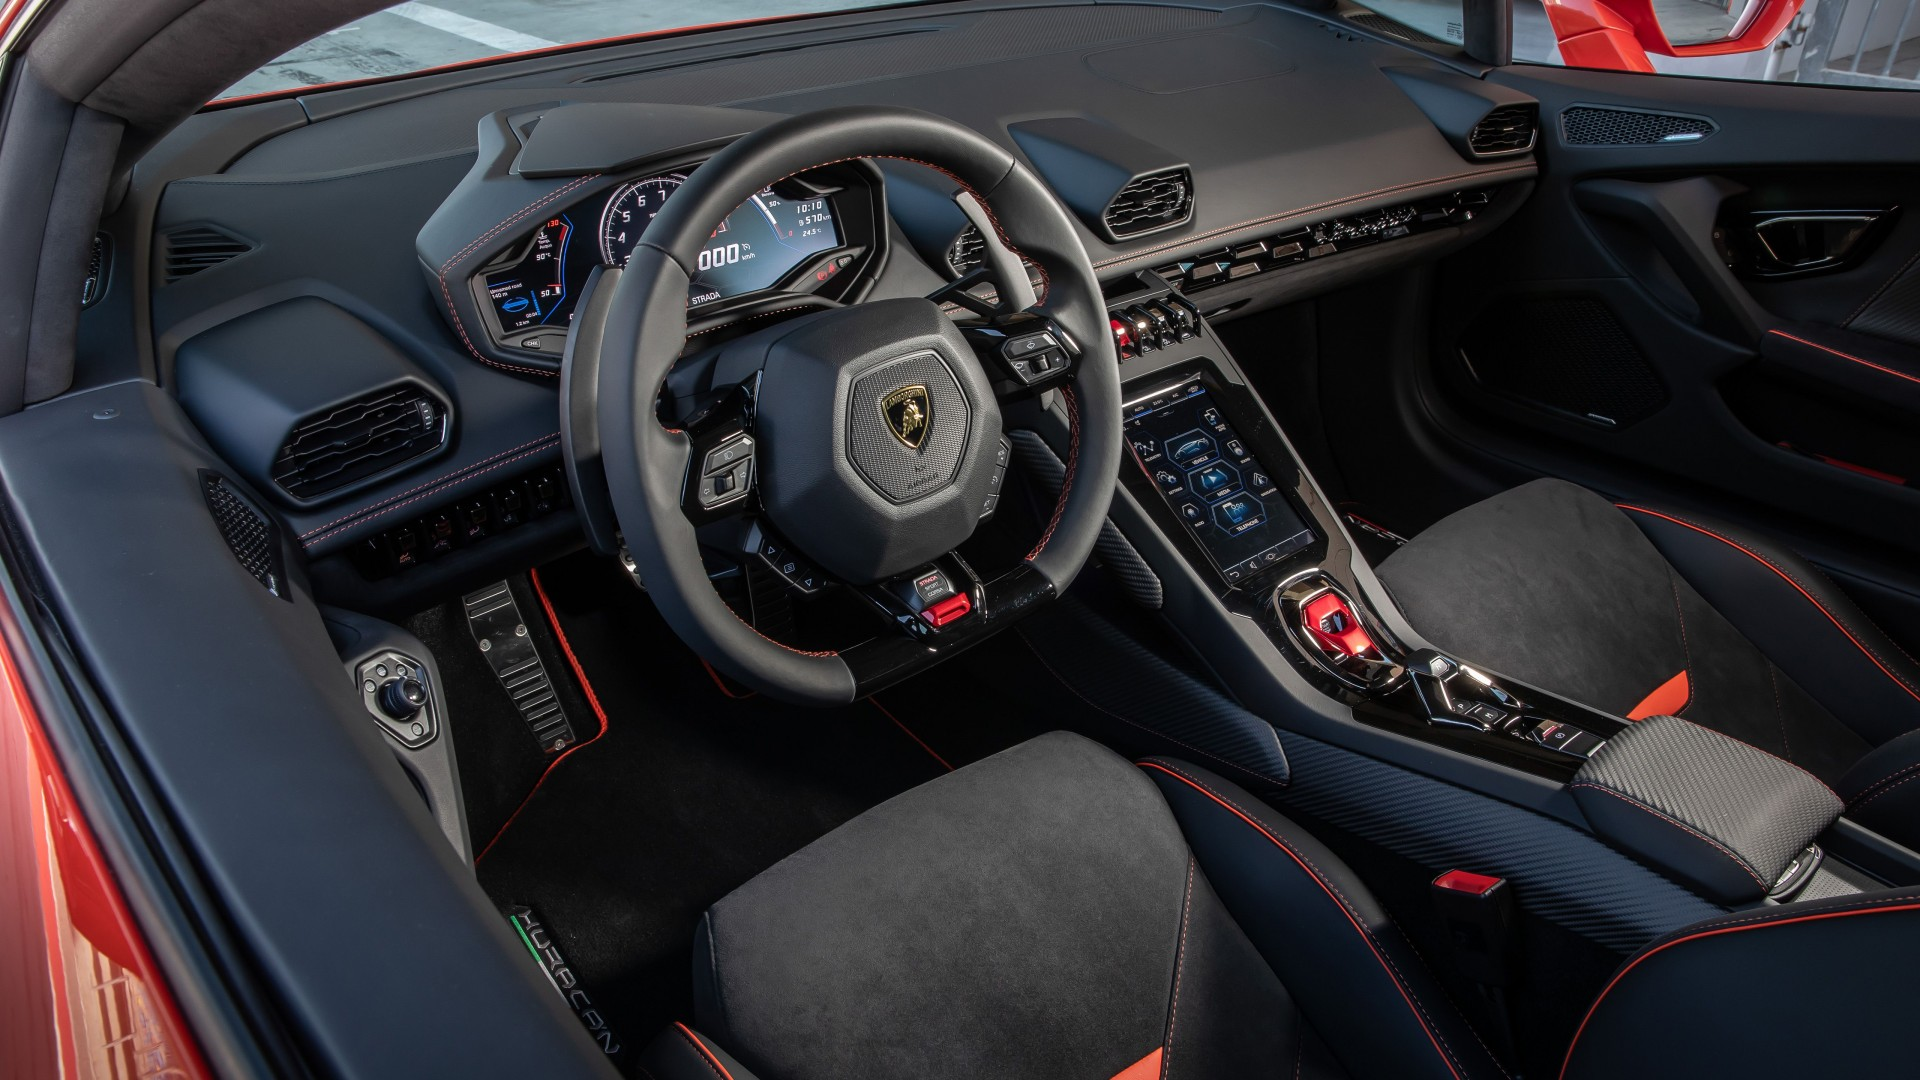 Car Wallpaper Hd For Iphone Lamborghini Huracan Evo Interior 5k 2019 Wallpaper Hd